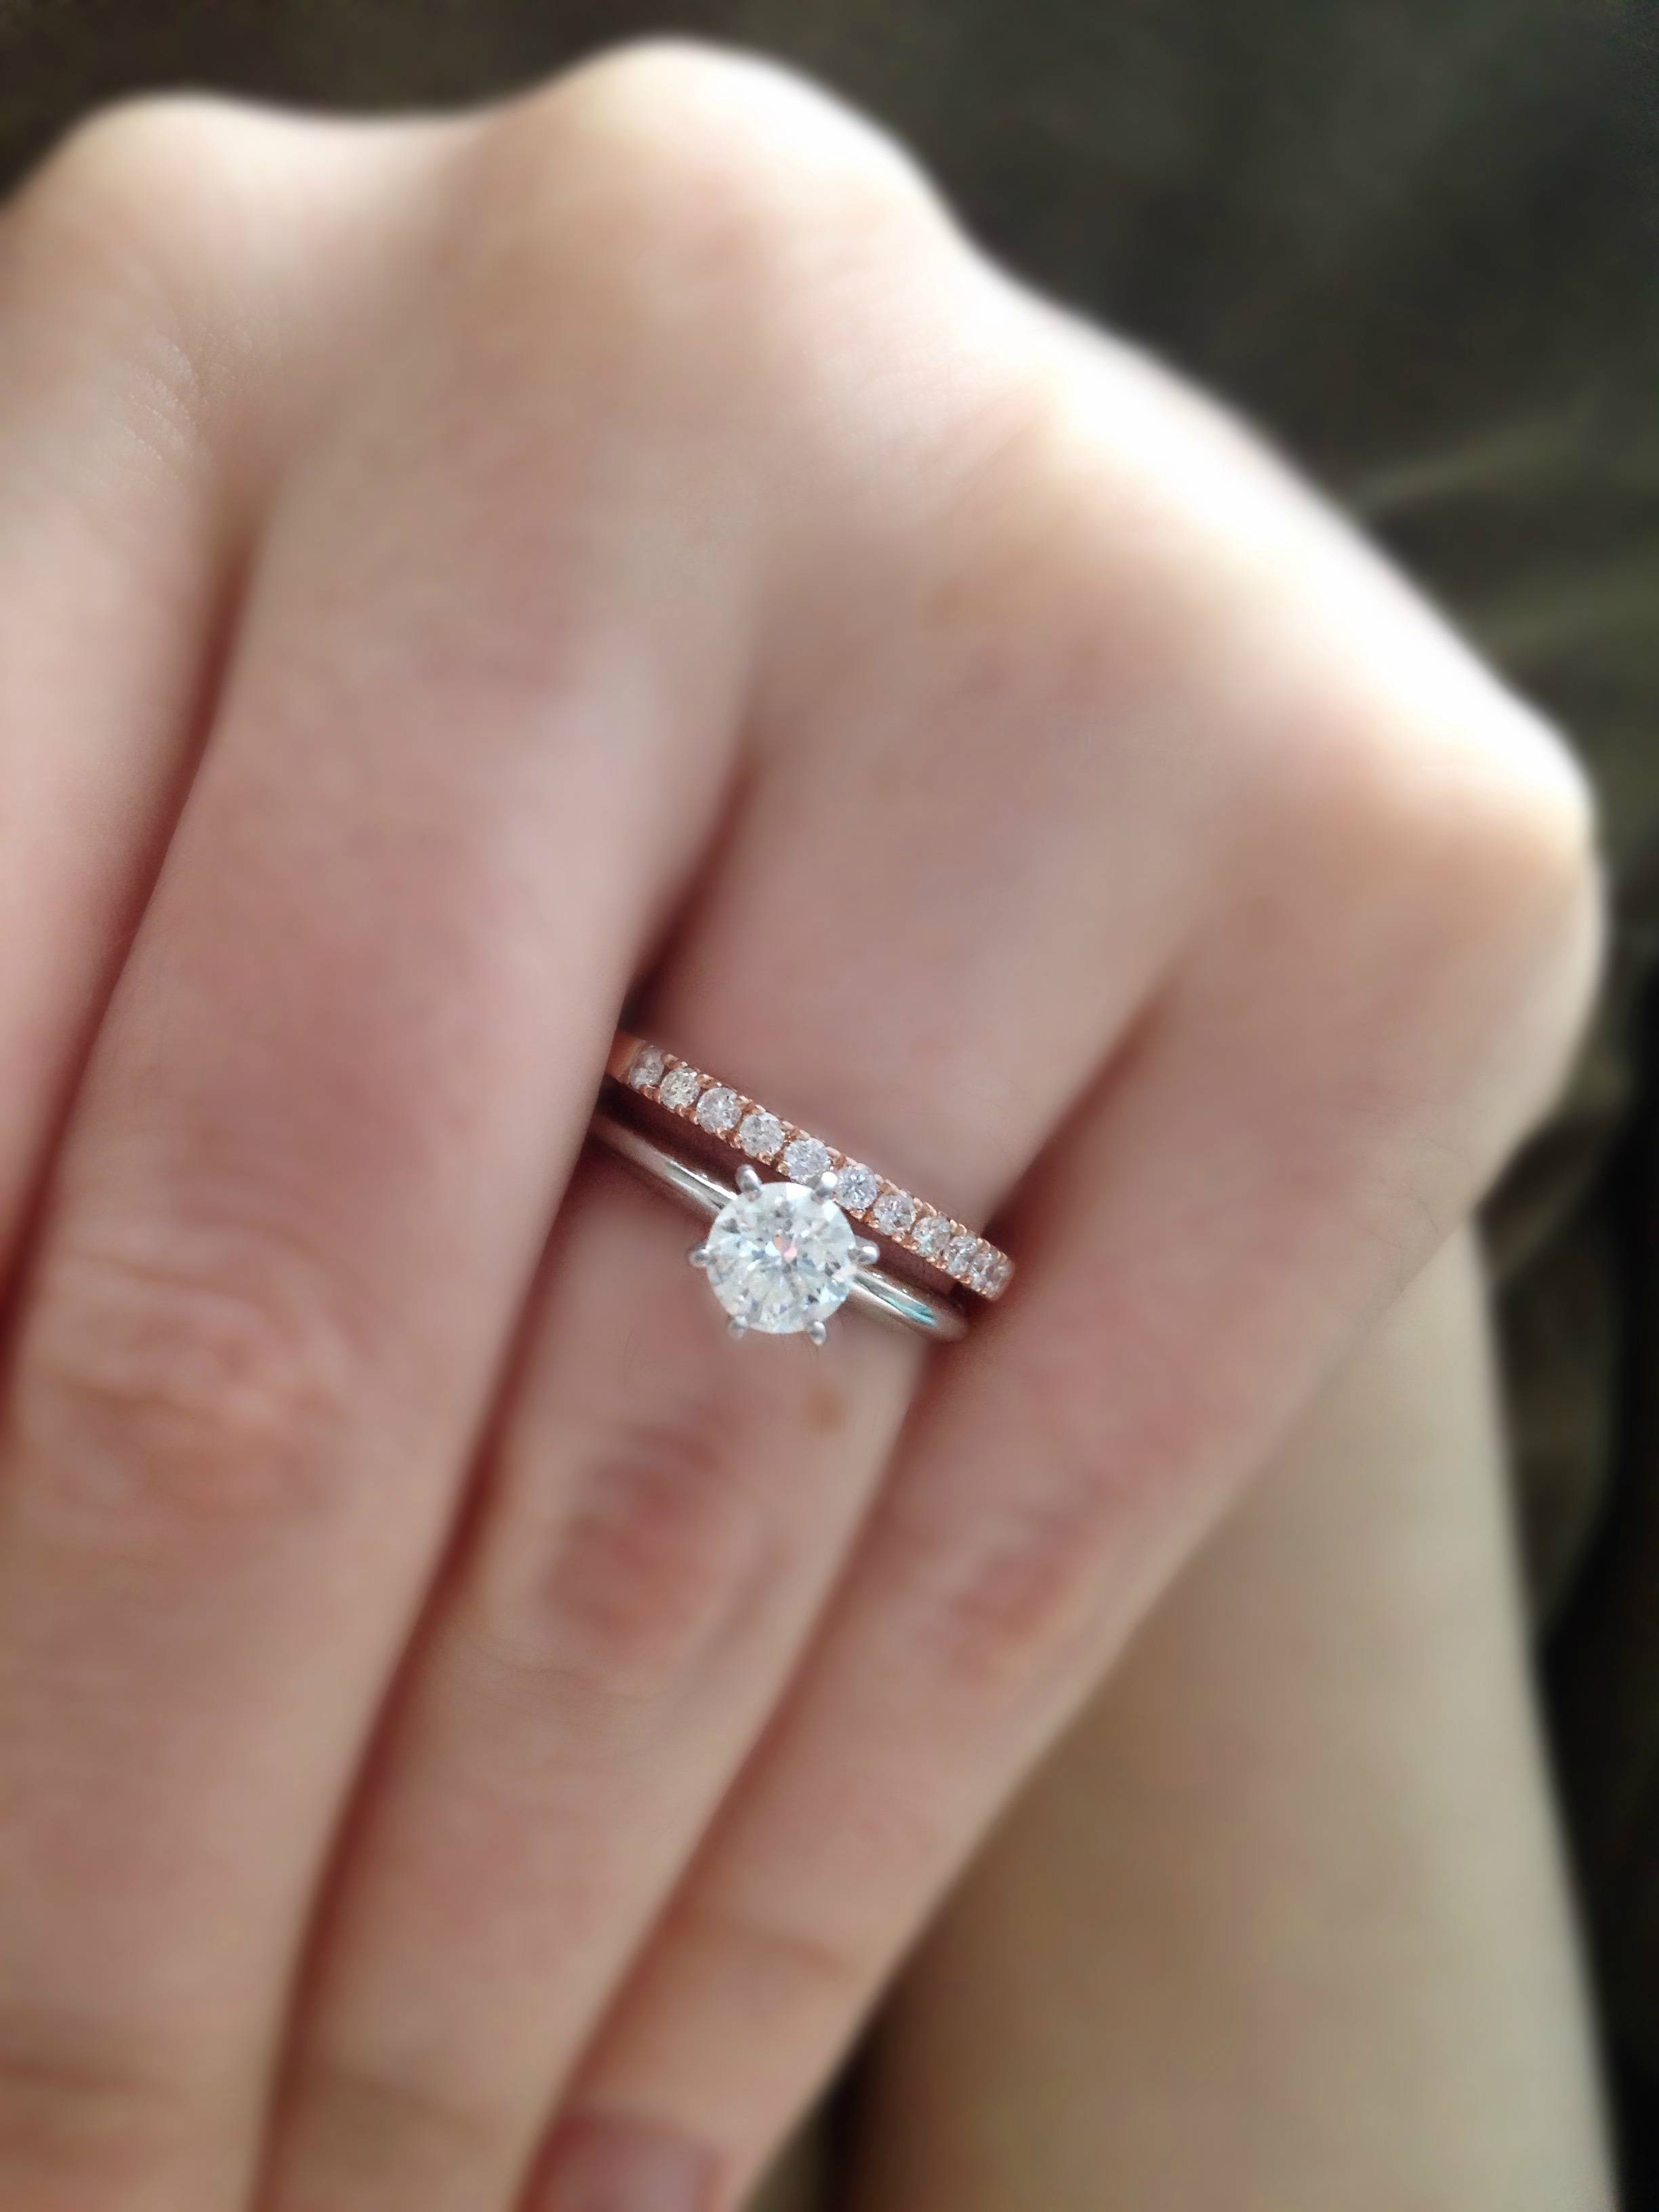 How Thin/thick Is Your Engagement Ring Band? – Weddingbee For (View 11 of 15)